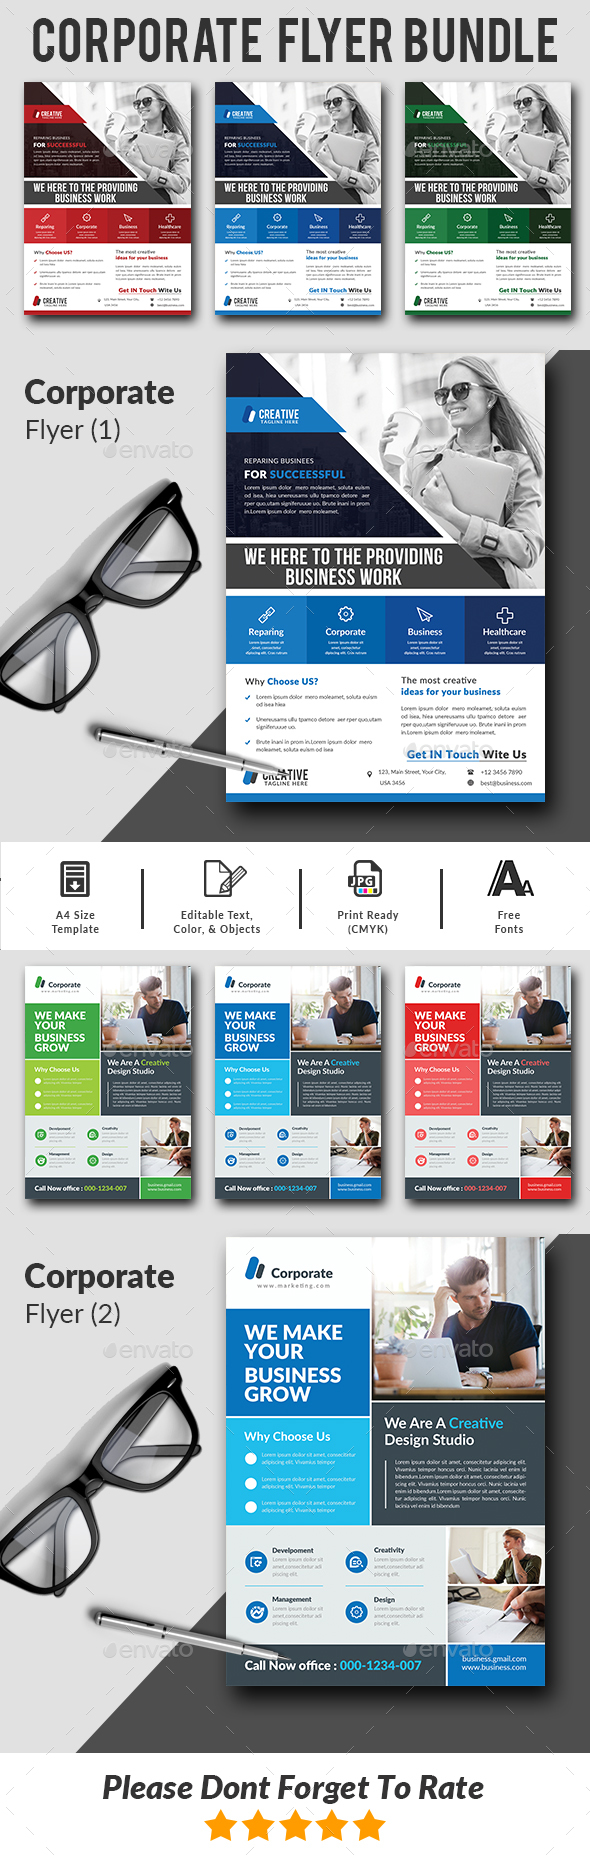 Corporate Flyers Bundle Templates - Corporate Flyers